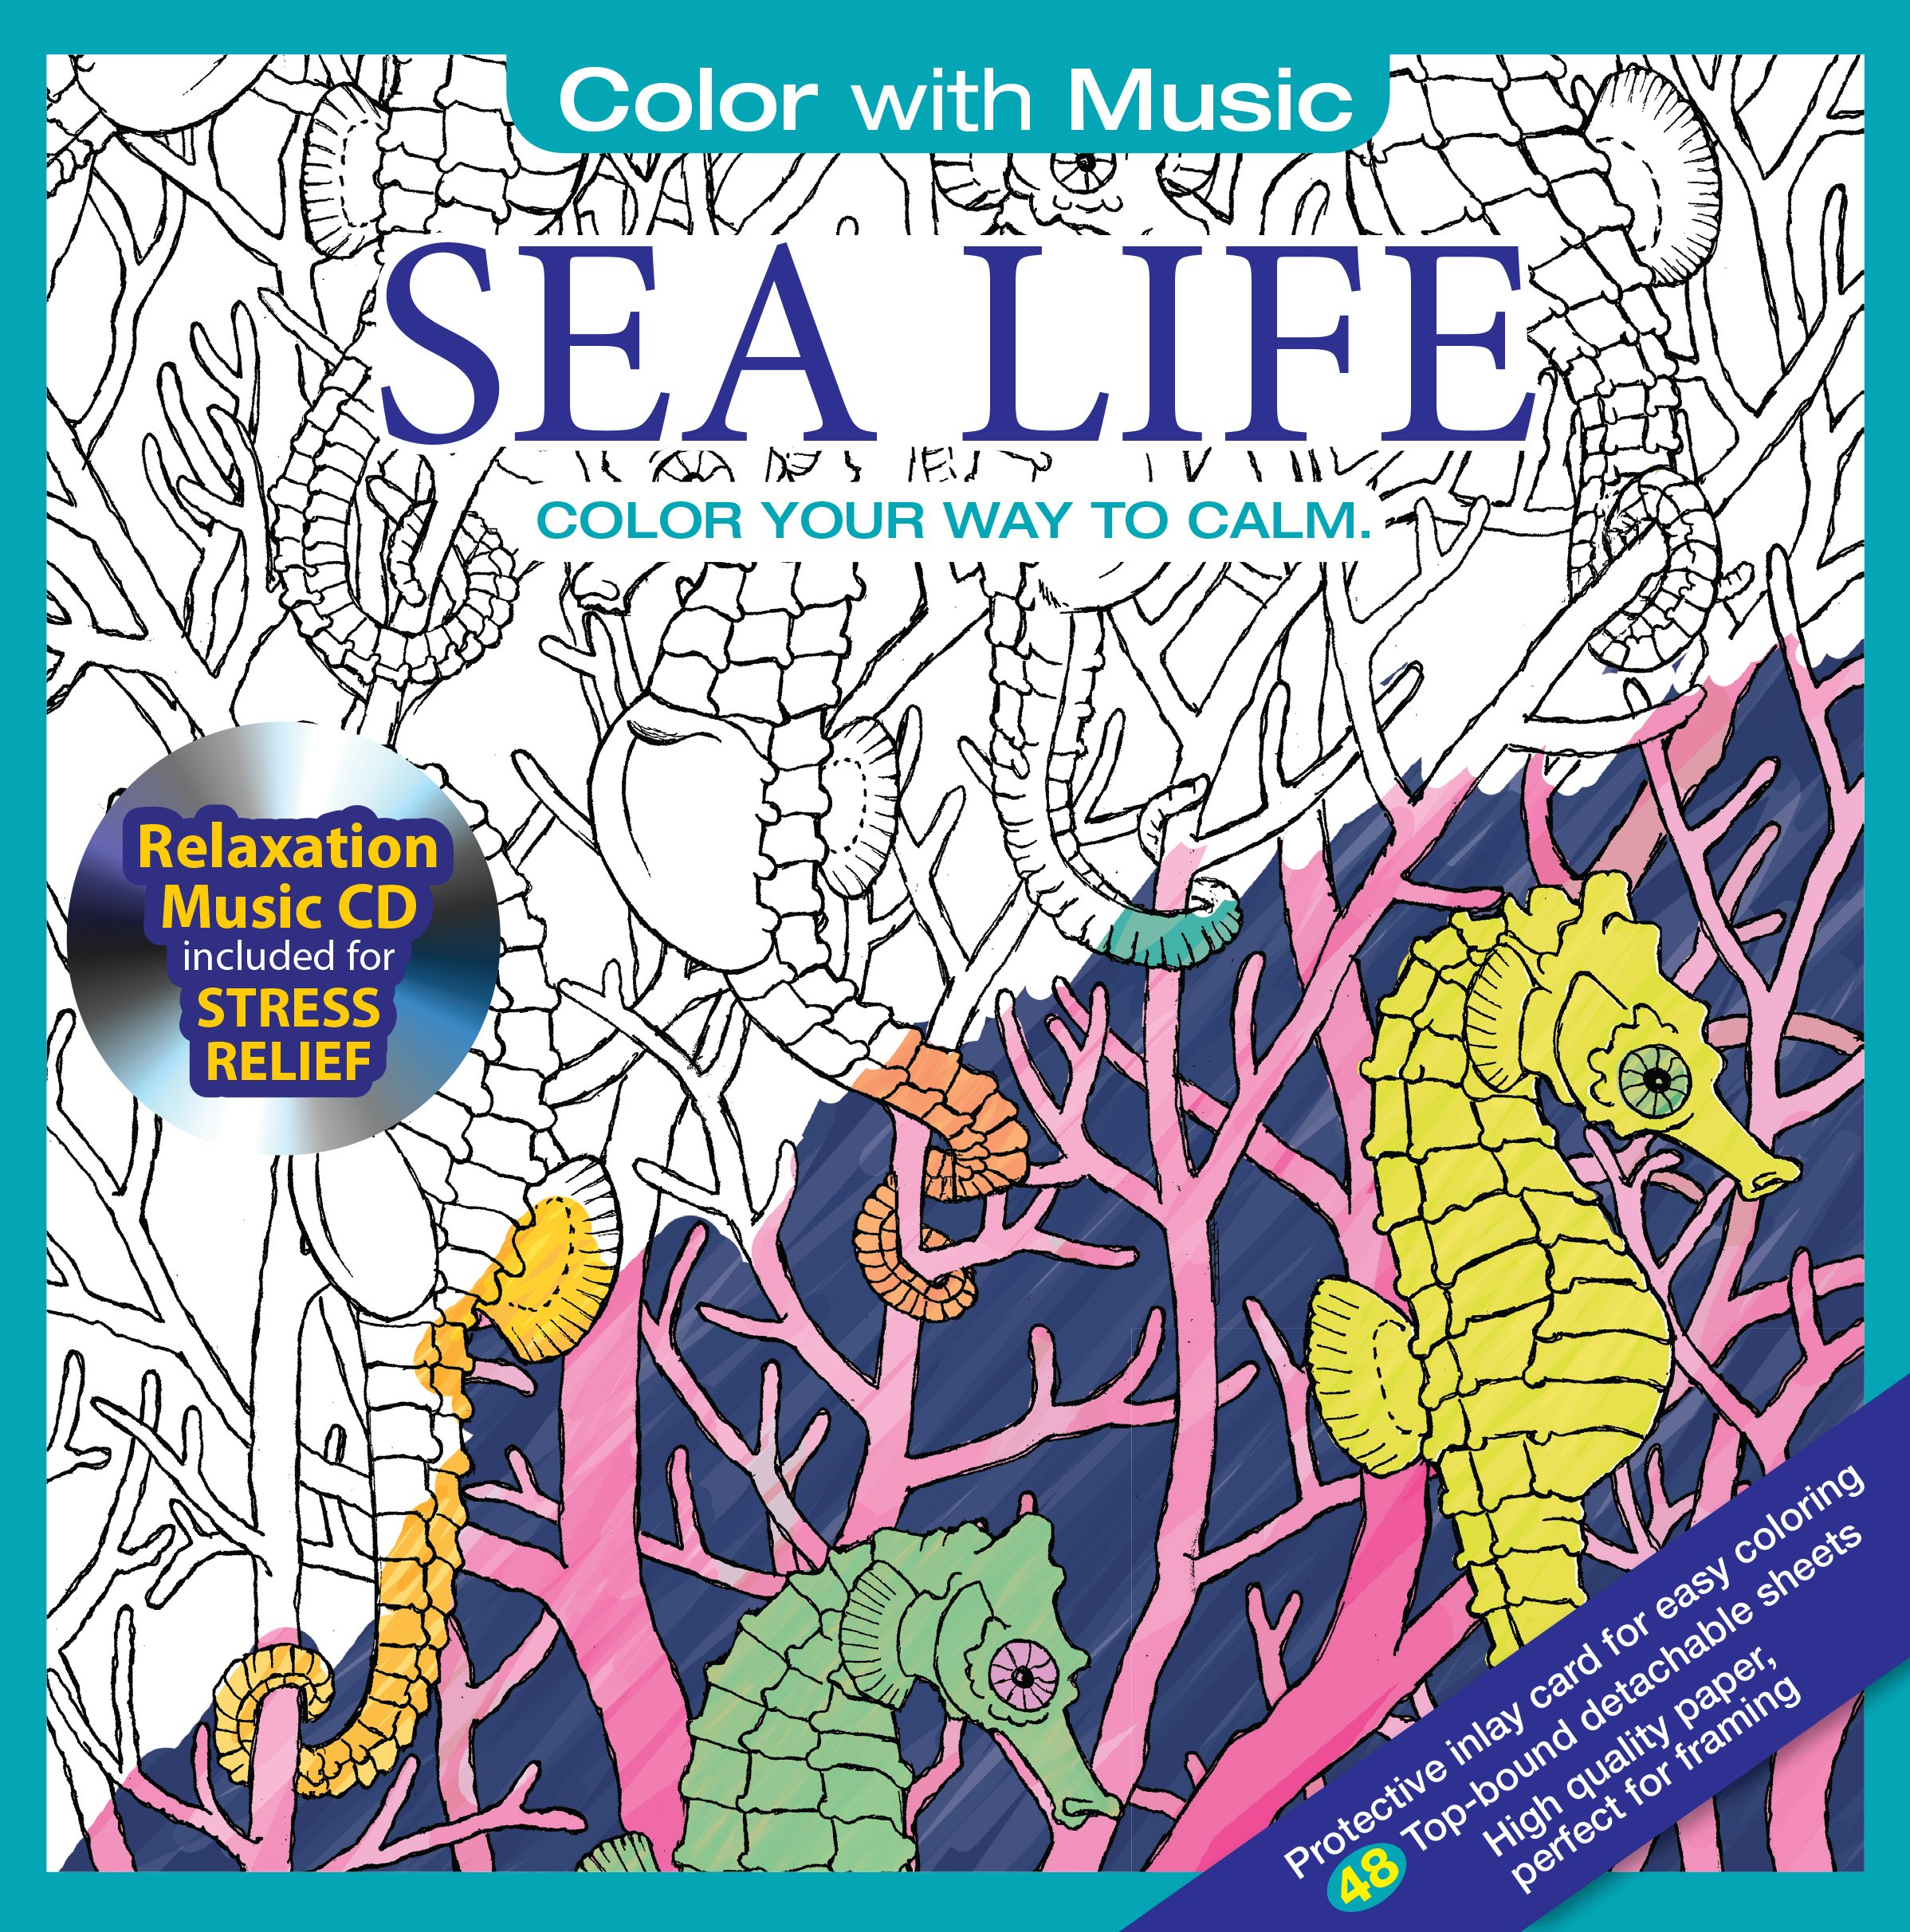 Adult coloring books ebay - Amazon Com Sea Ocean Life Adult Coloring Book With Bonus Relaxation Music Cd Included Color With Music 9781988137001 Newbourne Media Books